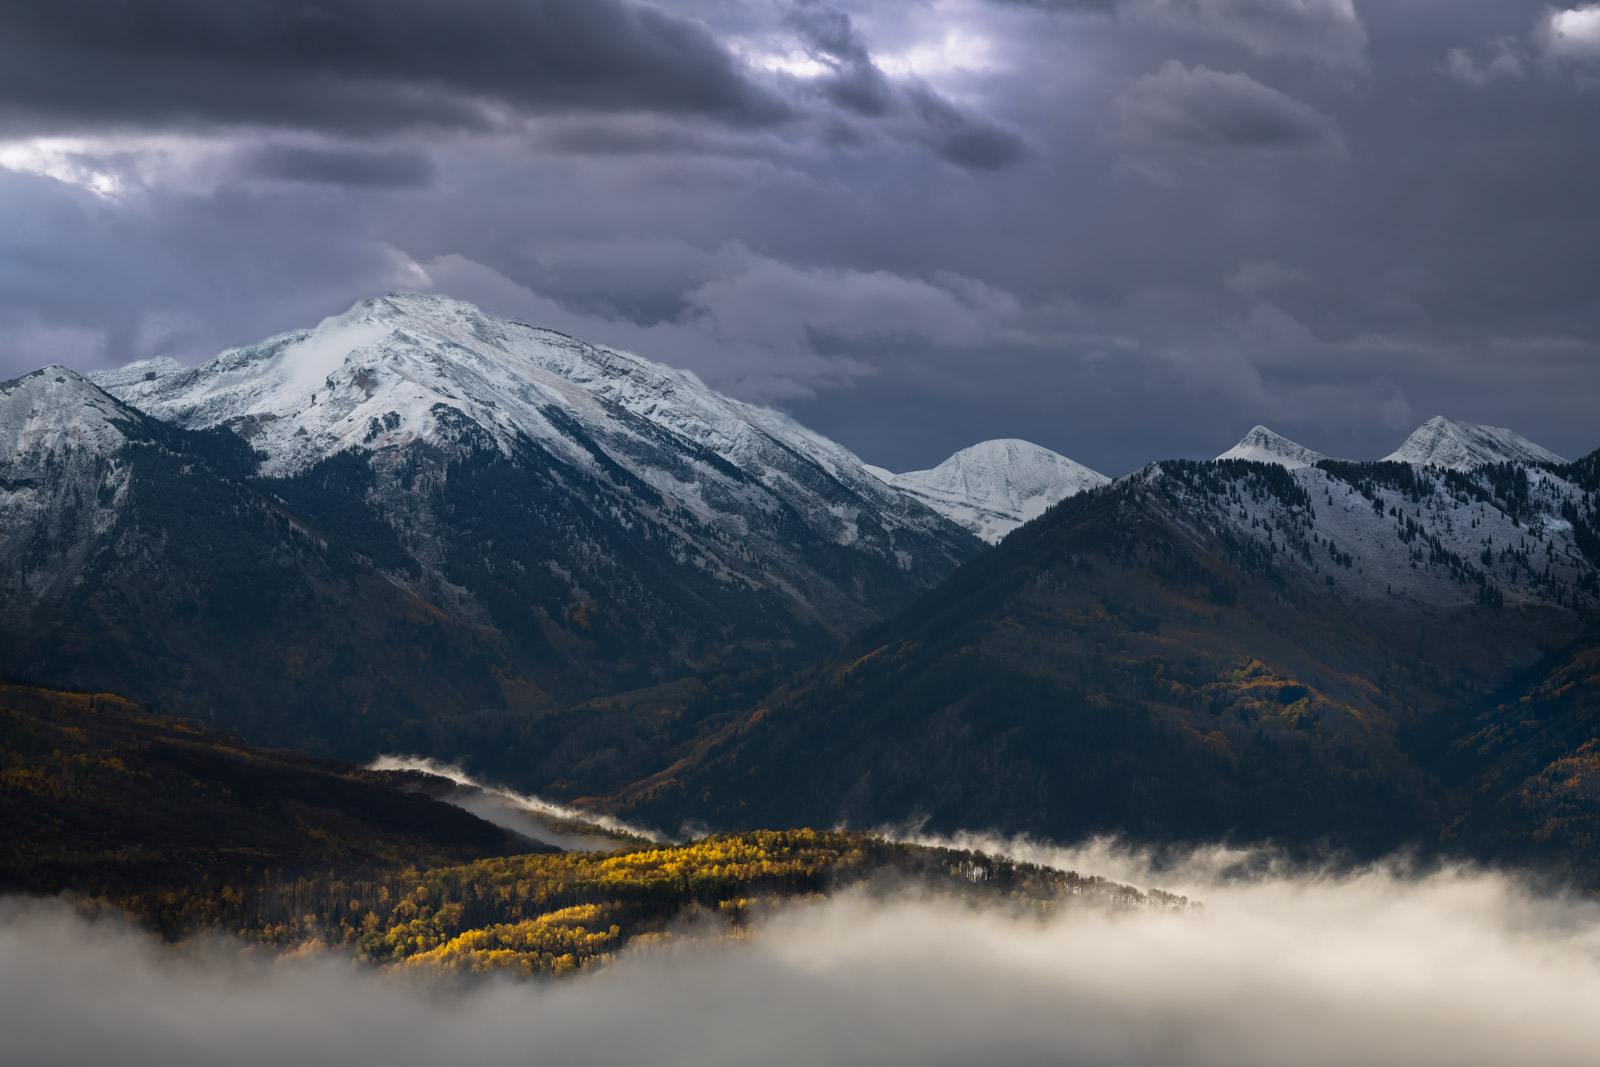 Colorado, McClure, Pass, Mountain, Fog, Fall, Color, limited edition, photograph, fine art, landscape, photo